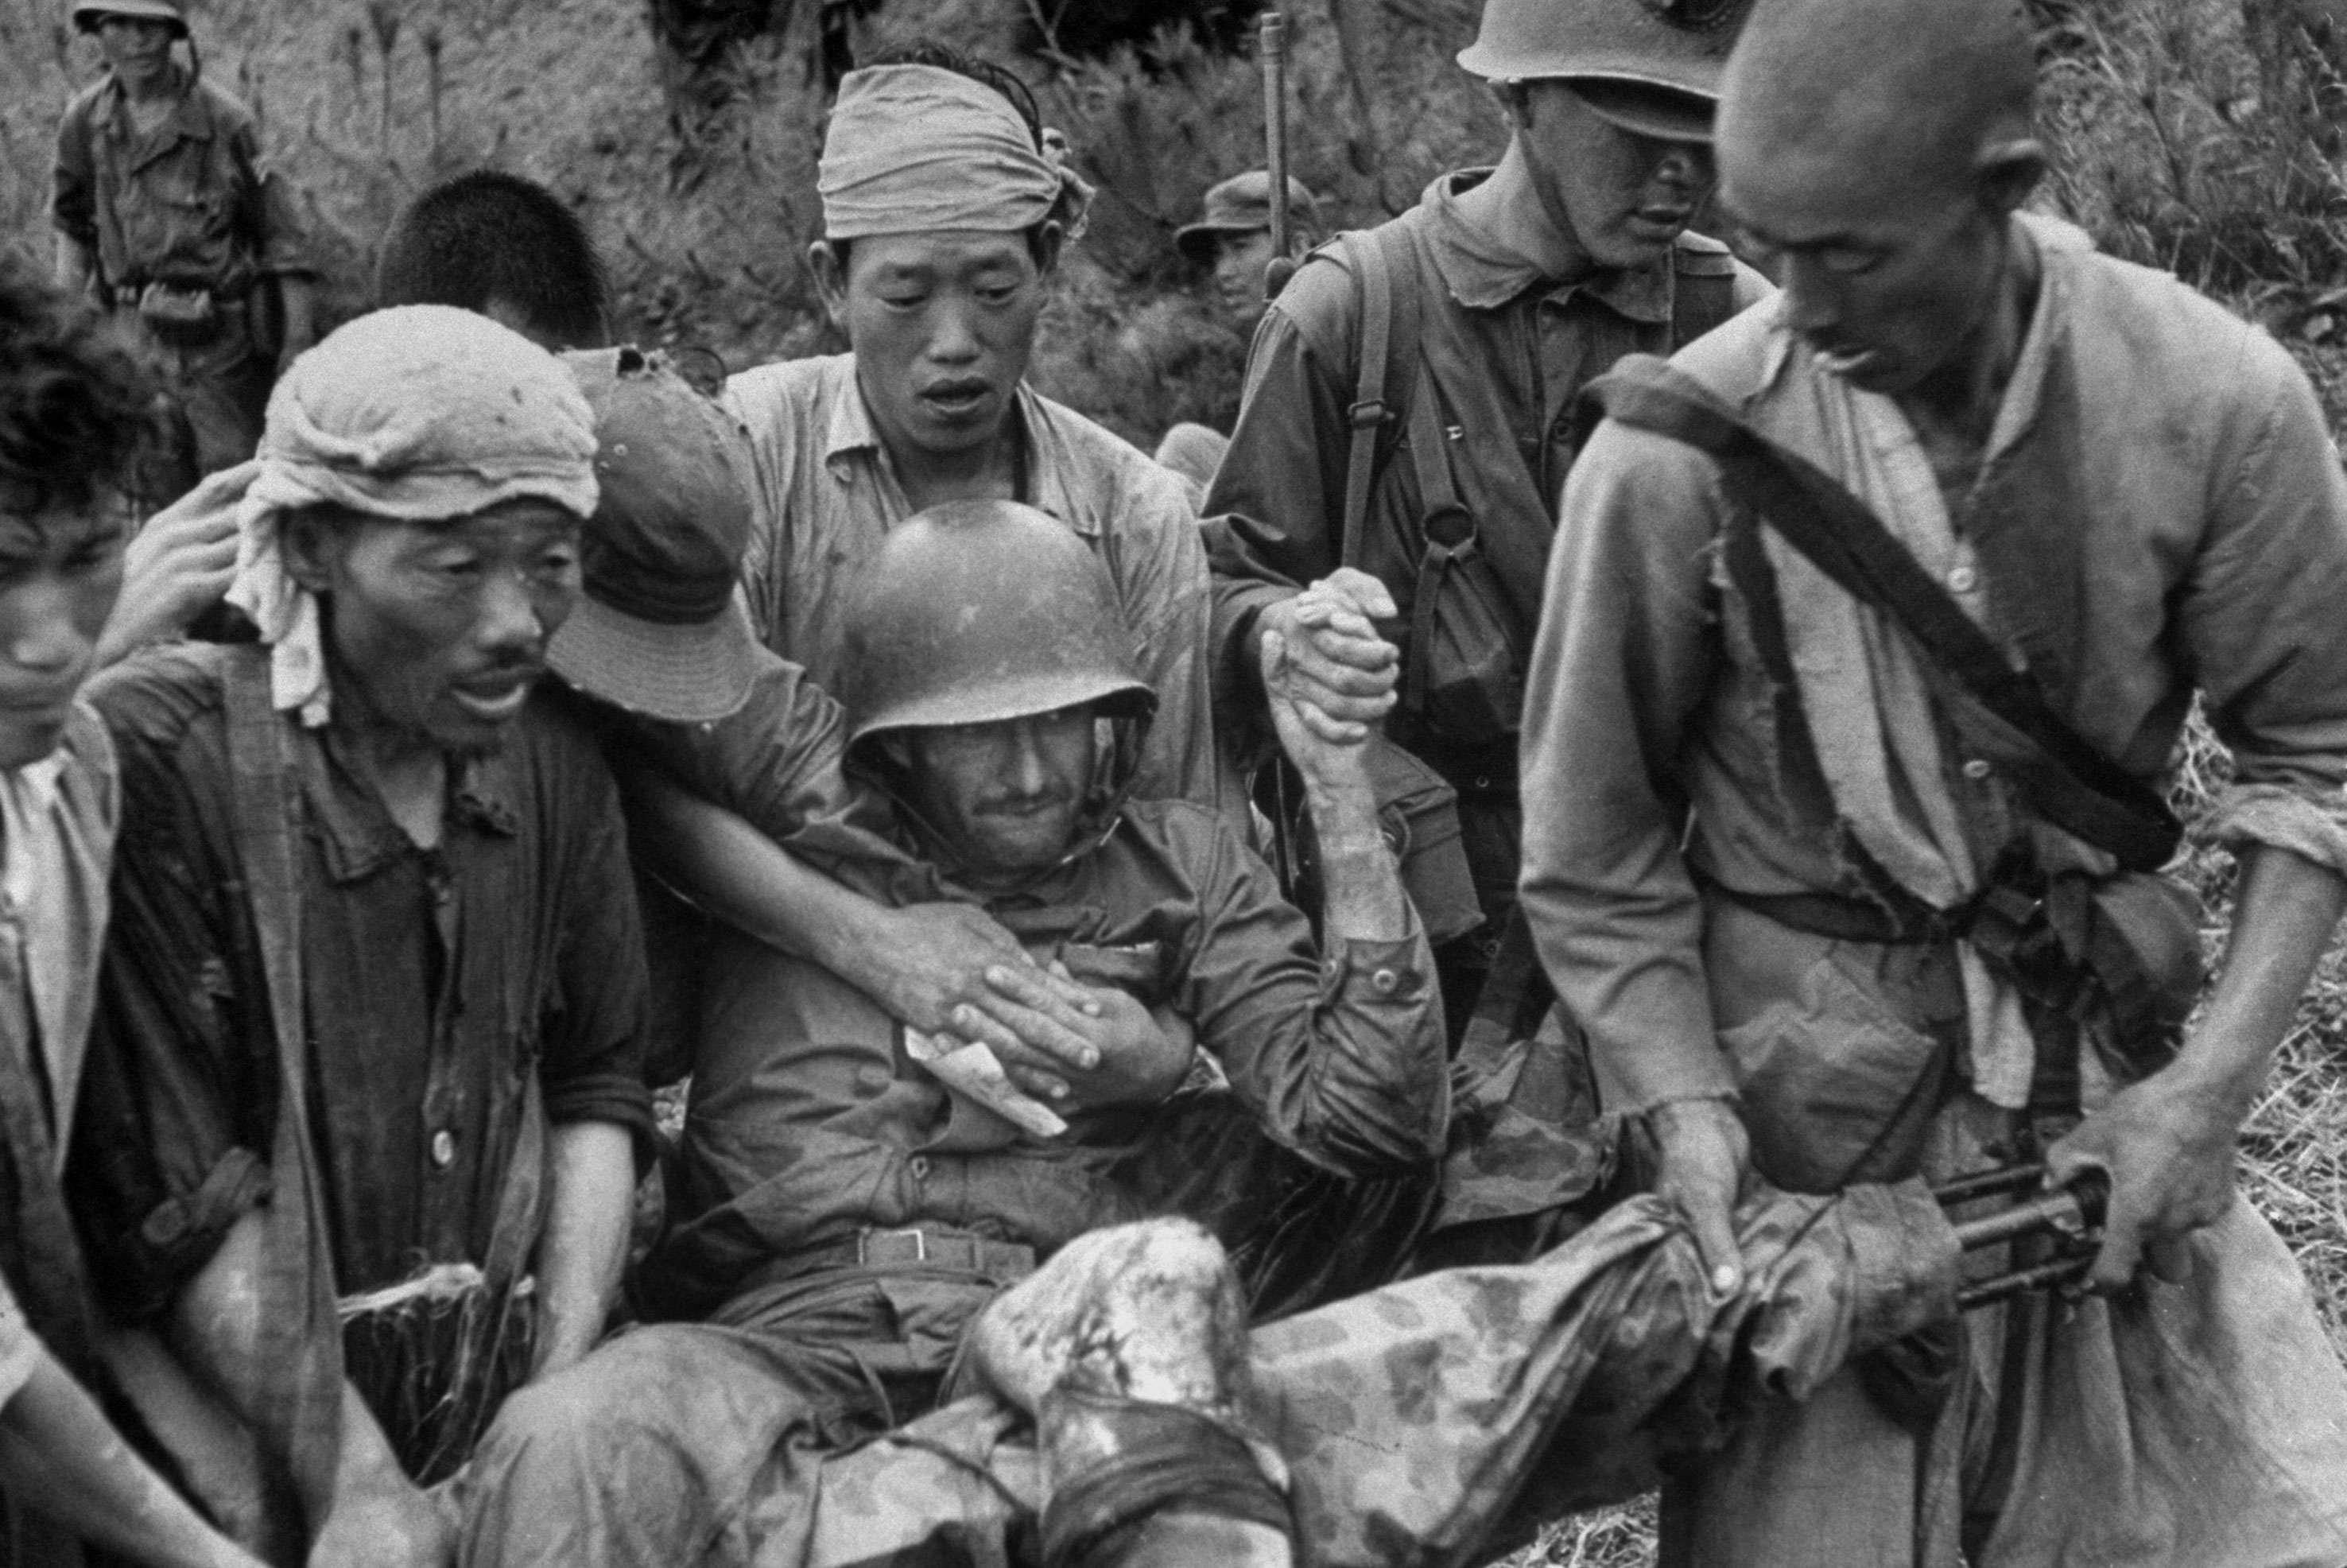 A wounded American Marine is carried on stretcher improvised from a machine gun, Korea 1950.